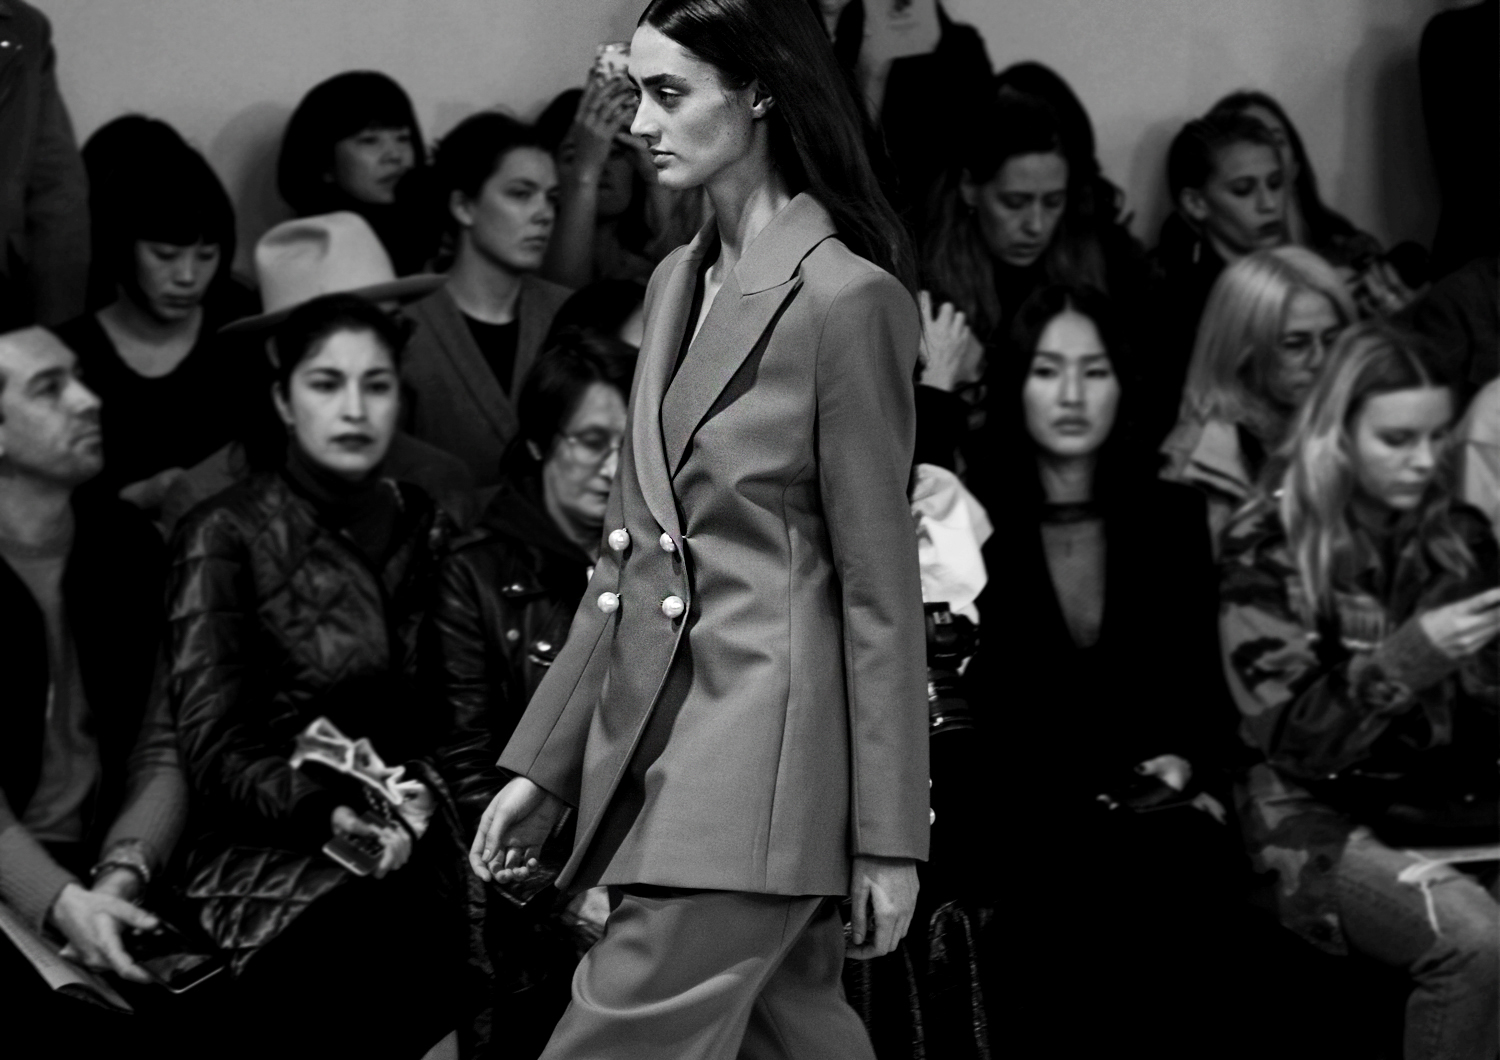 Fashion_Ellery_Paris_FashionWeek_PalaisDeTokyo_ReadyToWear_PretAPorter_Luxury_PFW_AutumnWinter_2017_Photography_GeorgMallner_